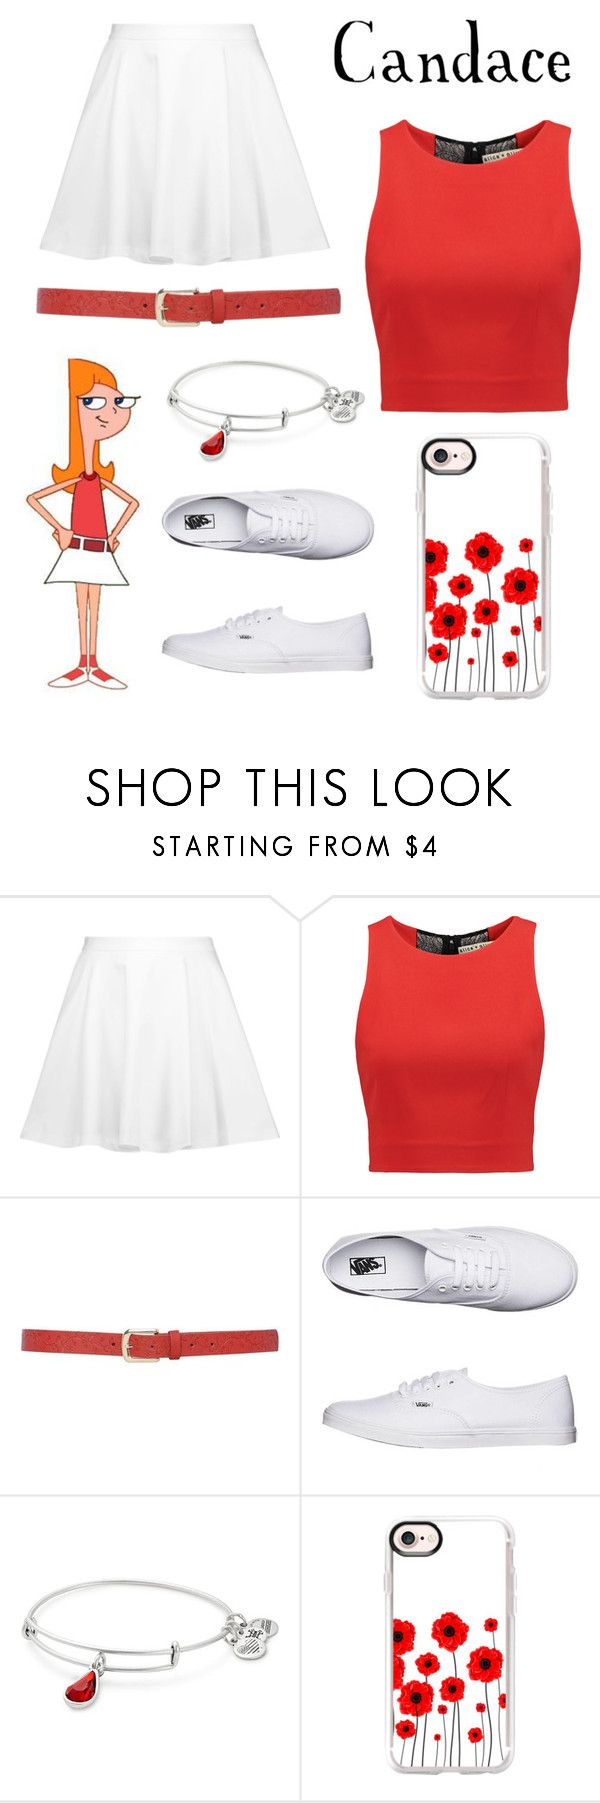 """""""Candace"""" by brianapaige14 ❤ liked on Polyvore featuring Alice + Olivia, M&Co, Vans, Alex and Ani, Casetify, white, red, disney, phineasandferb and disneycharacter"""